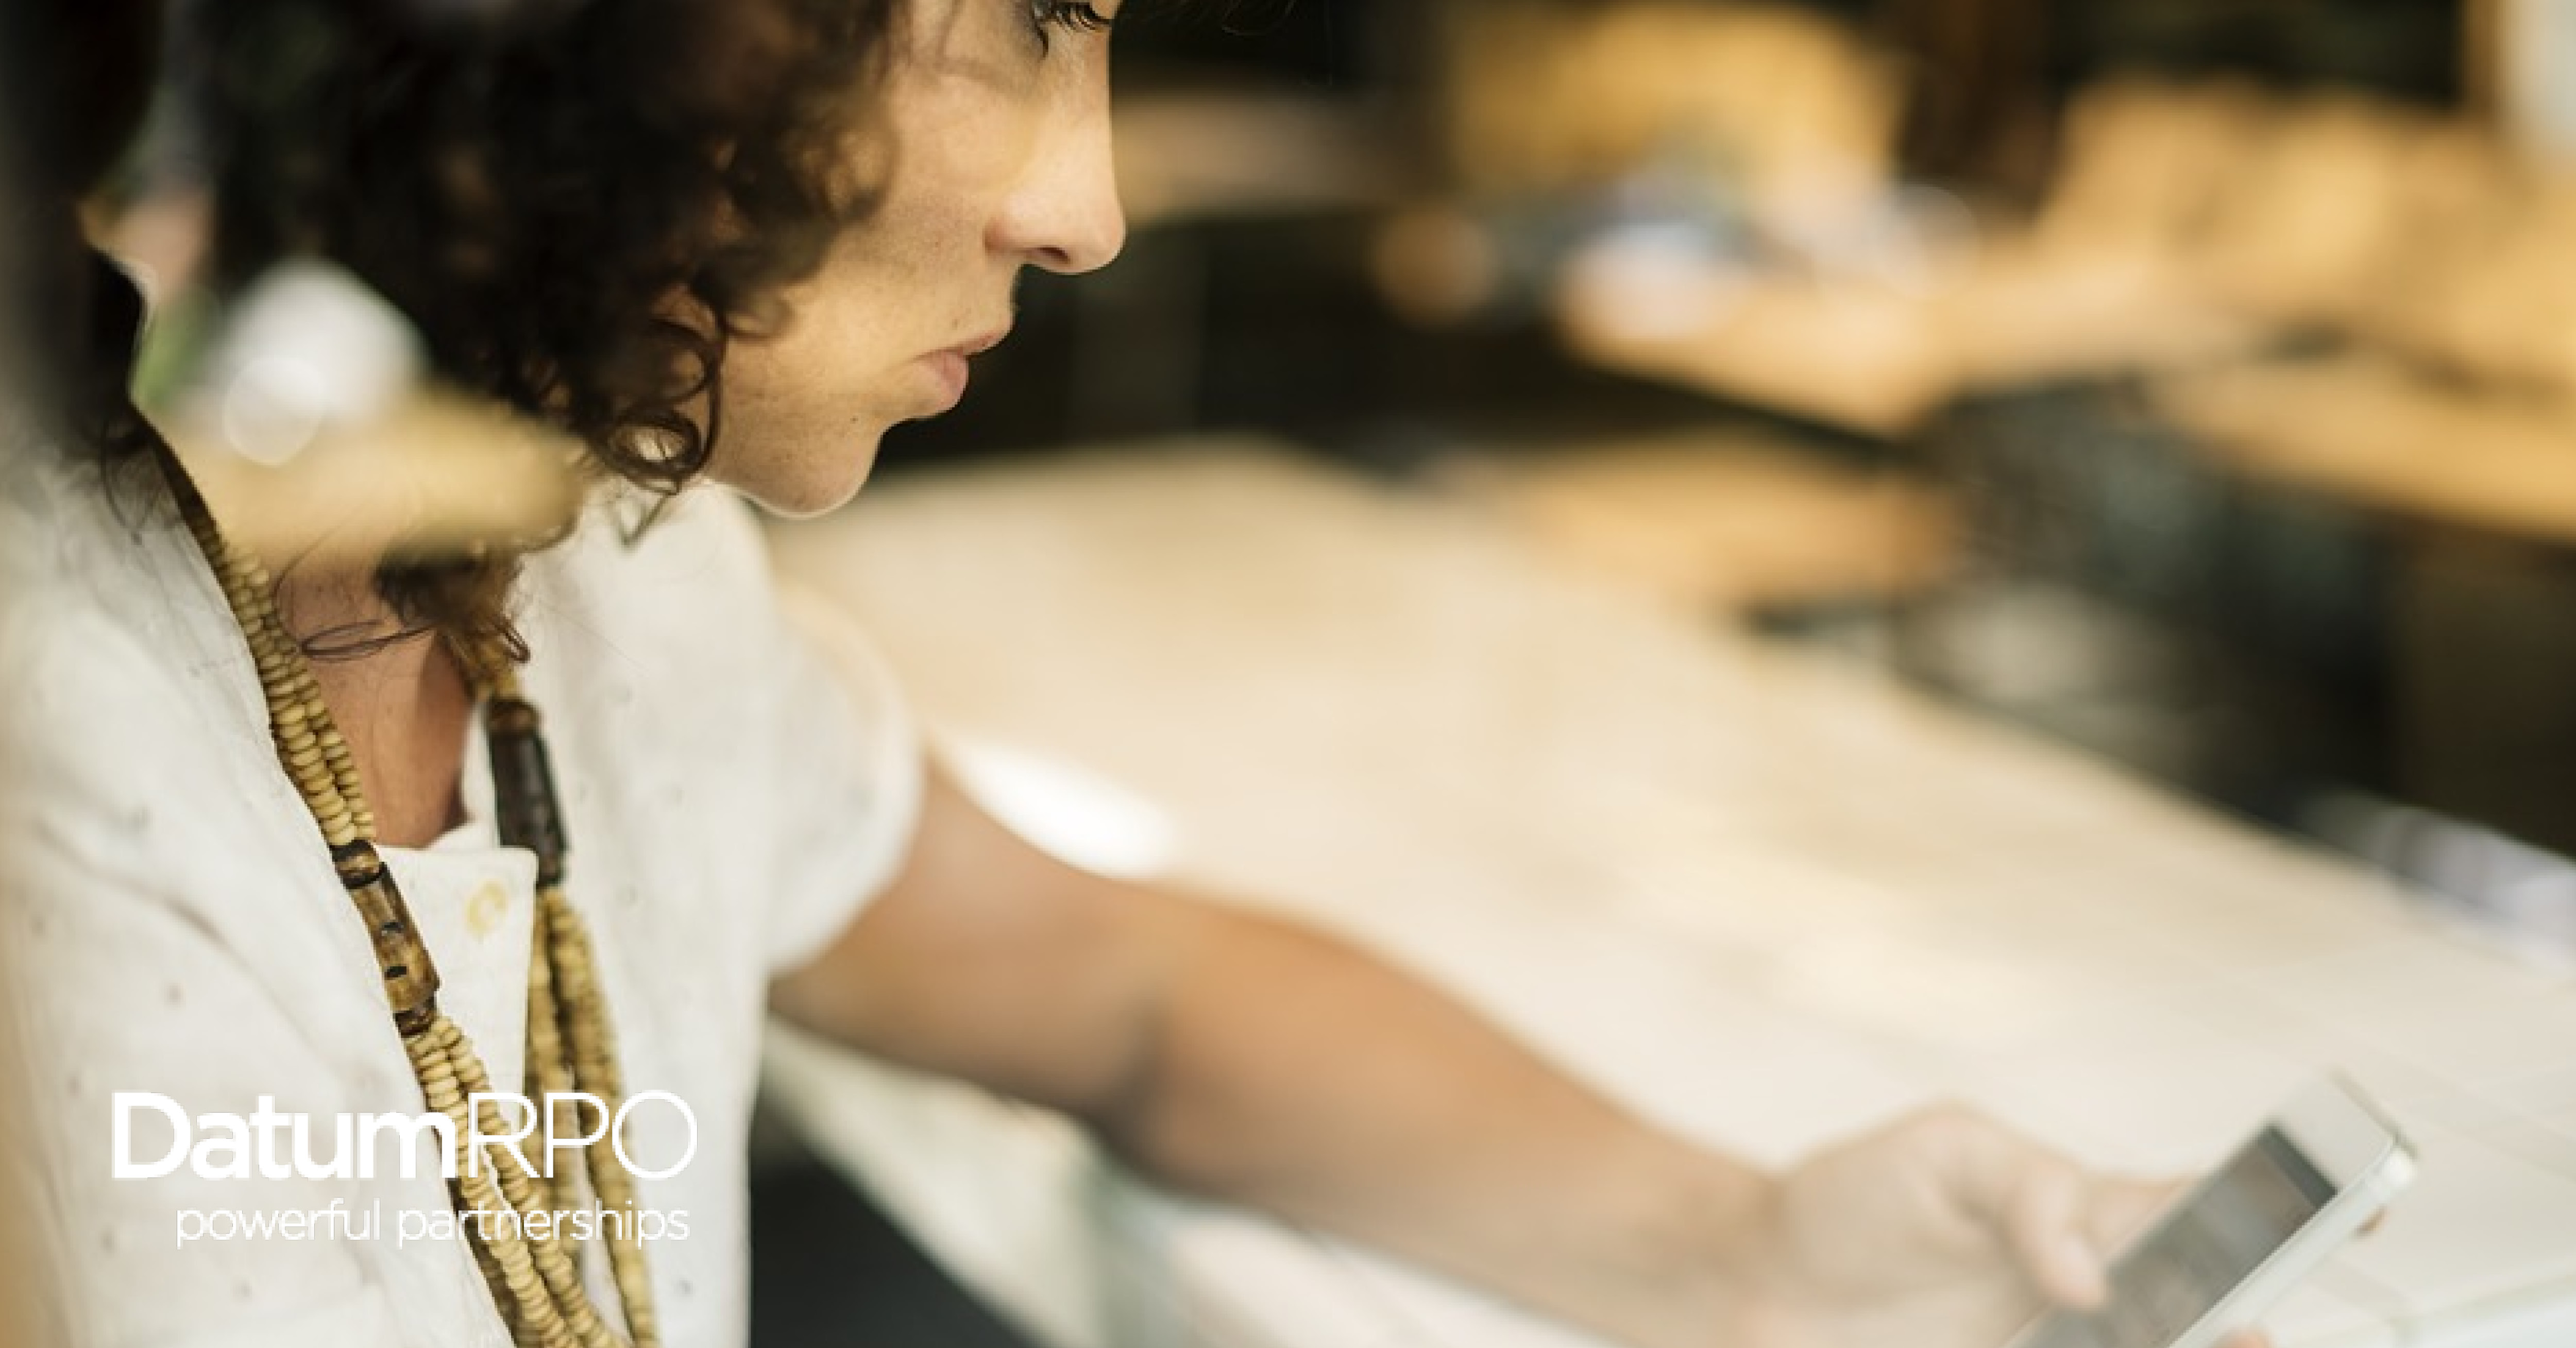 5 Things Busy Professionals Should Know About Preventing Burnout